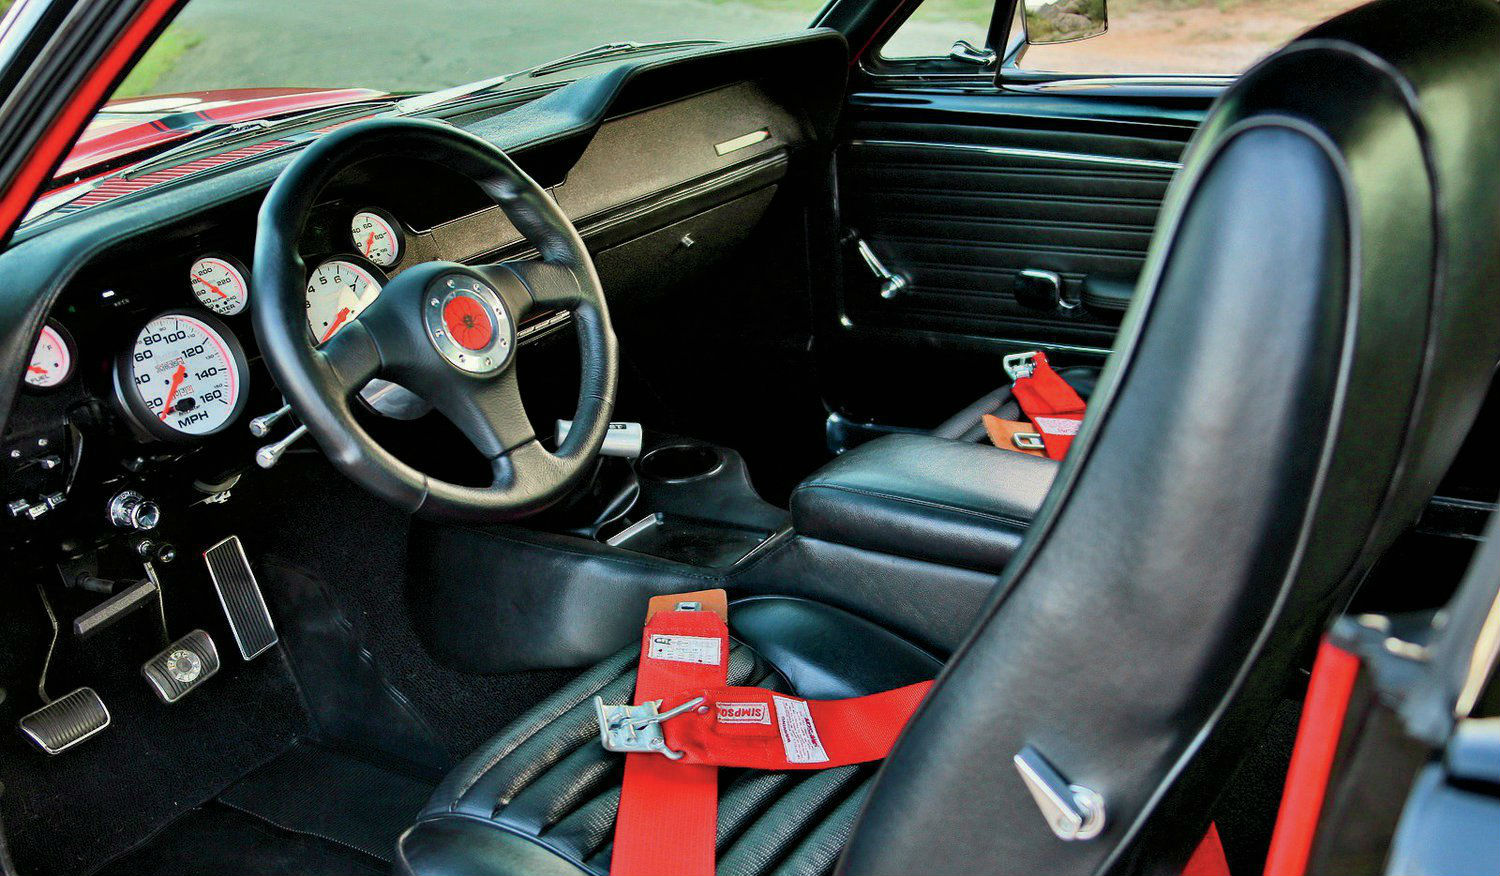 1967 ford mustang fastback interior - 1967 Ford Mustang Convertible Interior